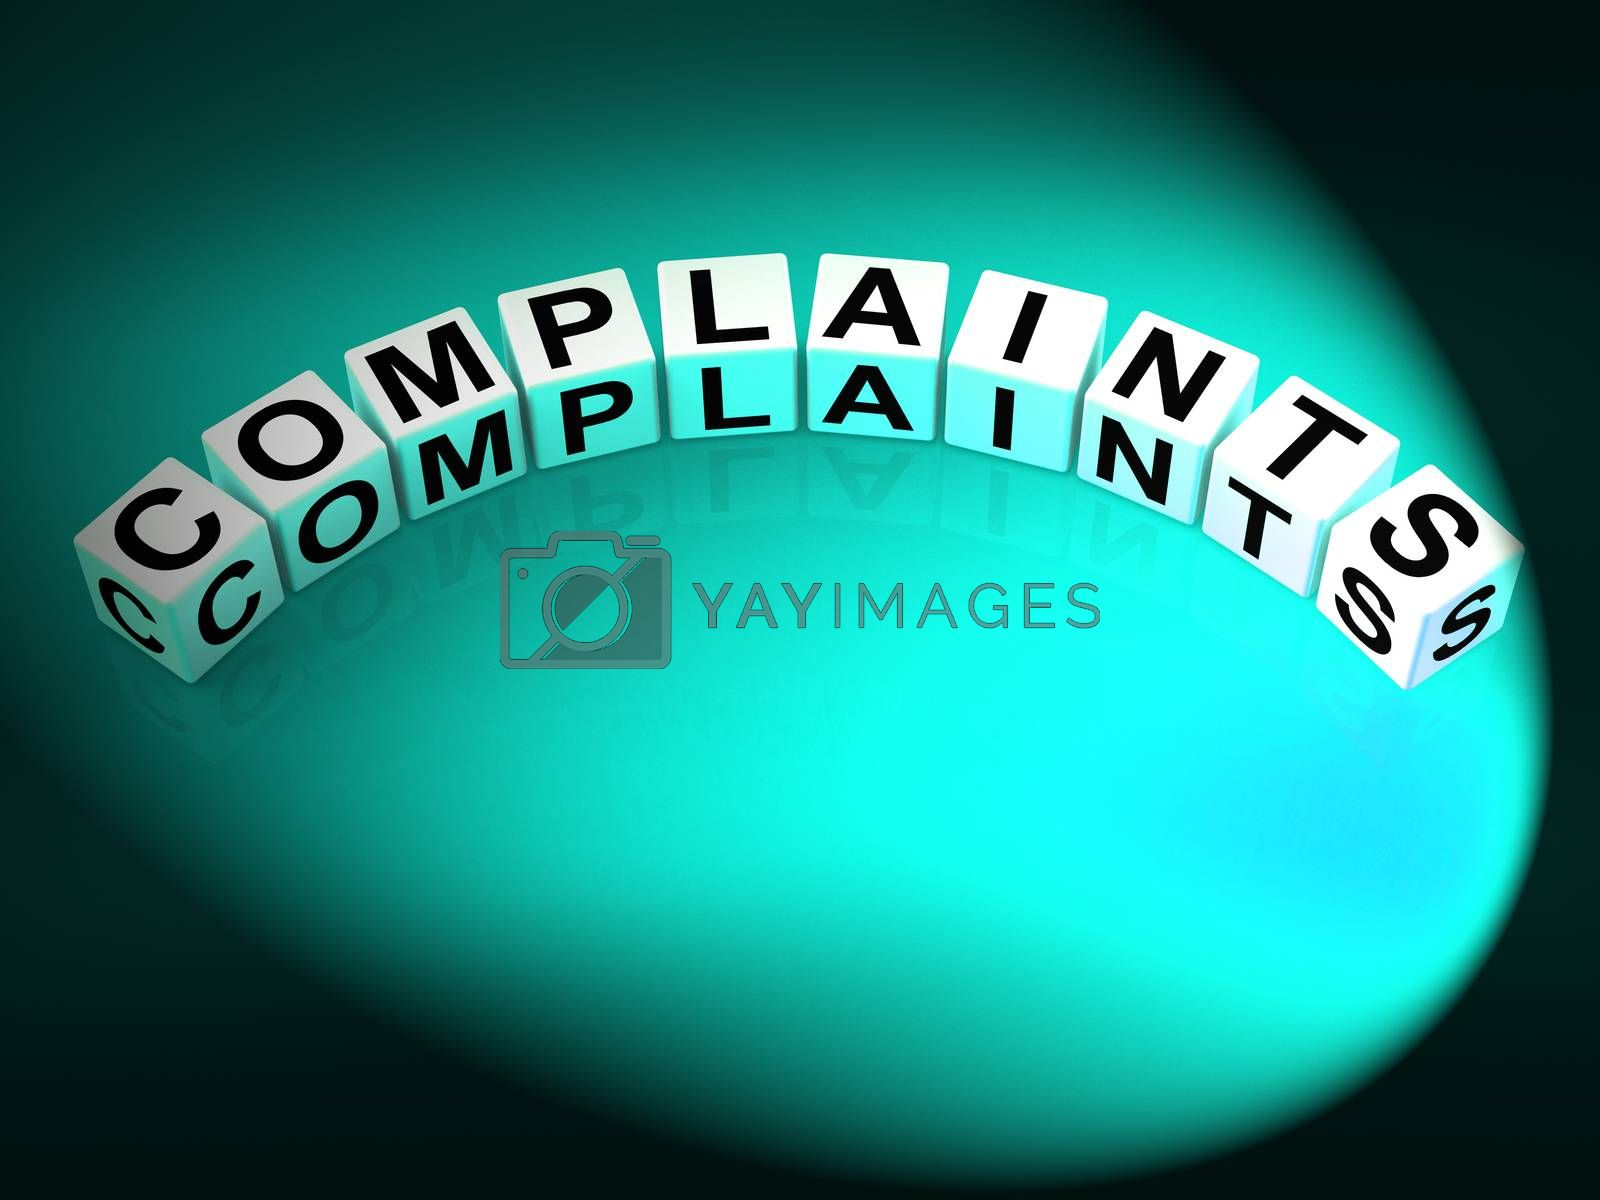 Complaints Letters Means Dissatisfied Angry And Criticism by stuartmiles